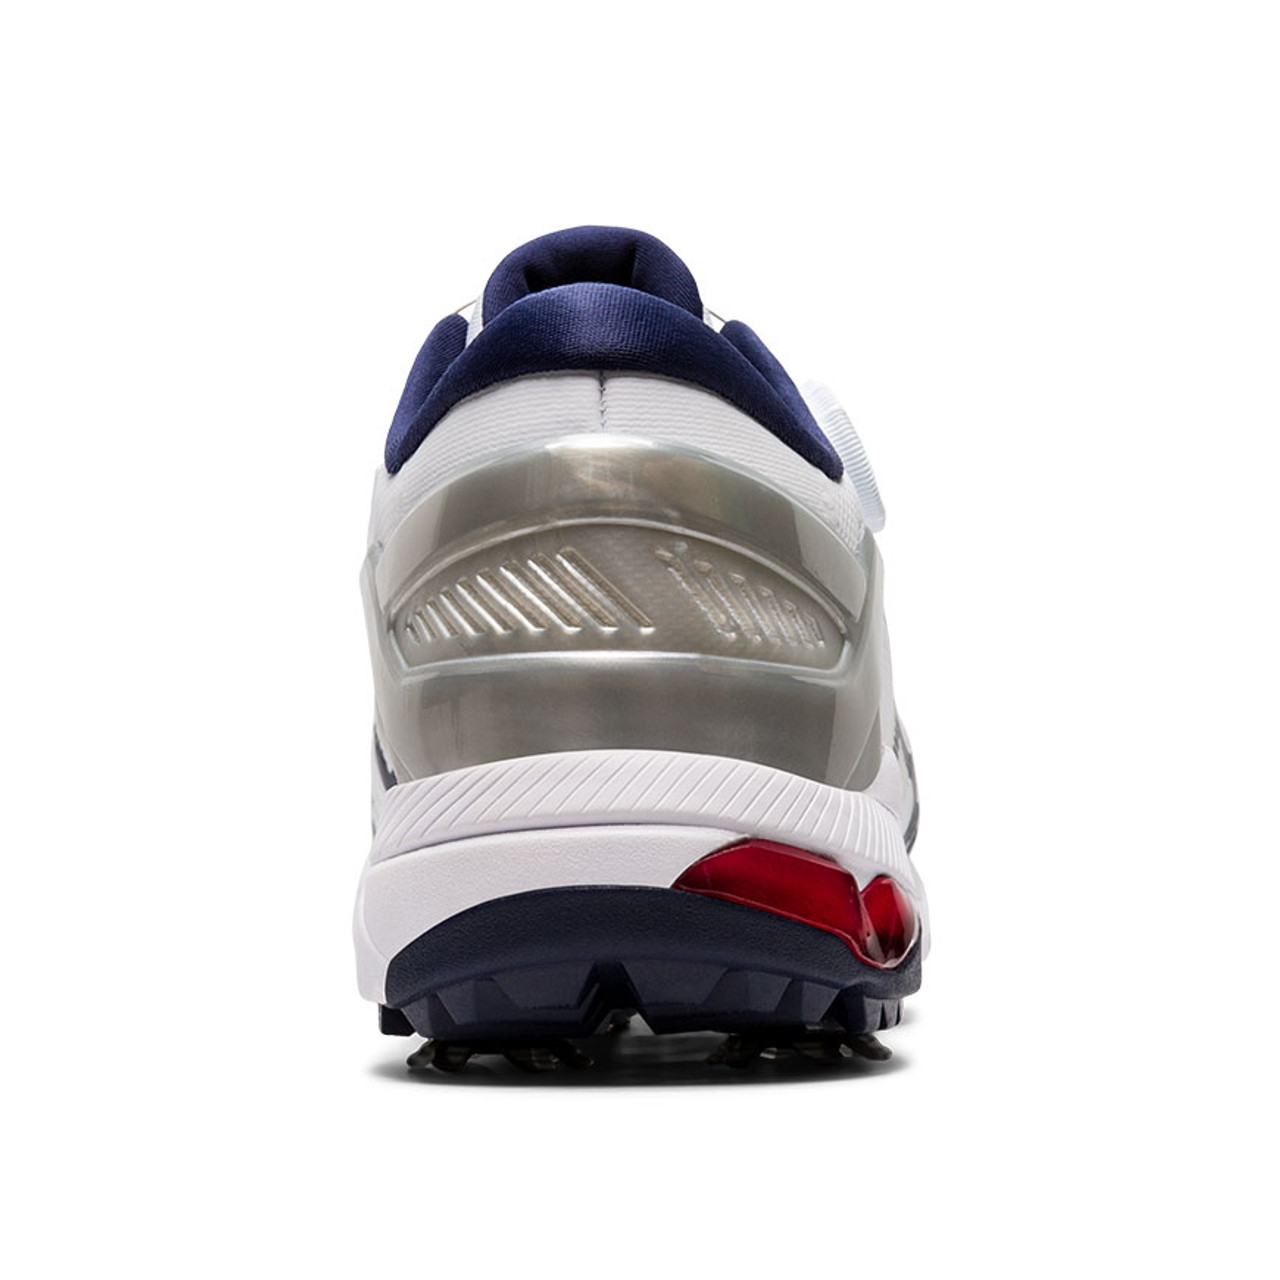 Asics Gel-Course Duo Boa Golf Shoes - White / Navy / Gray